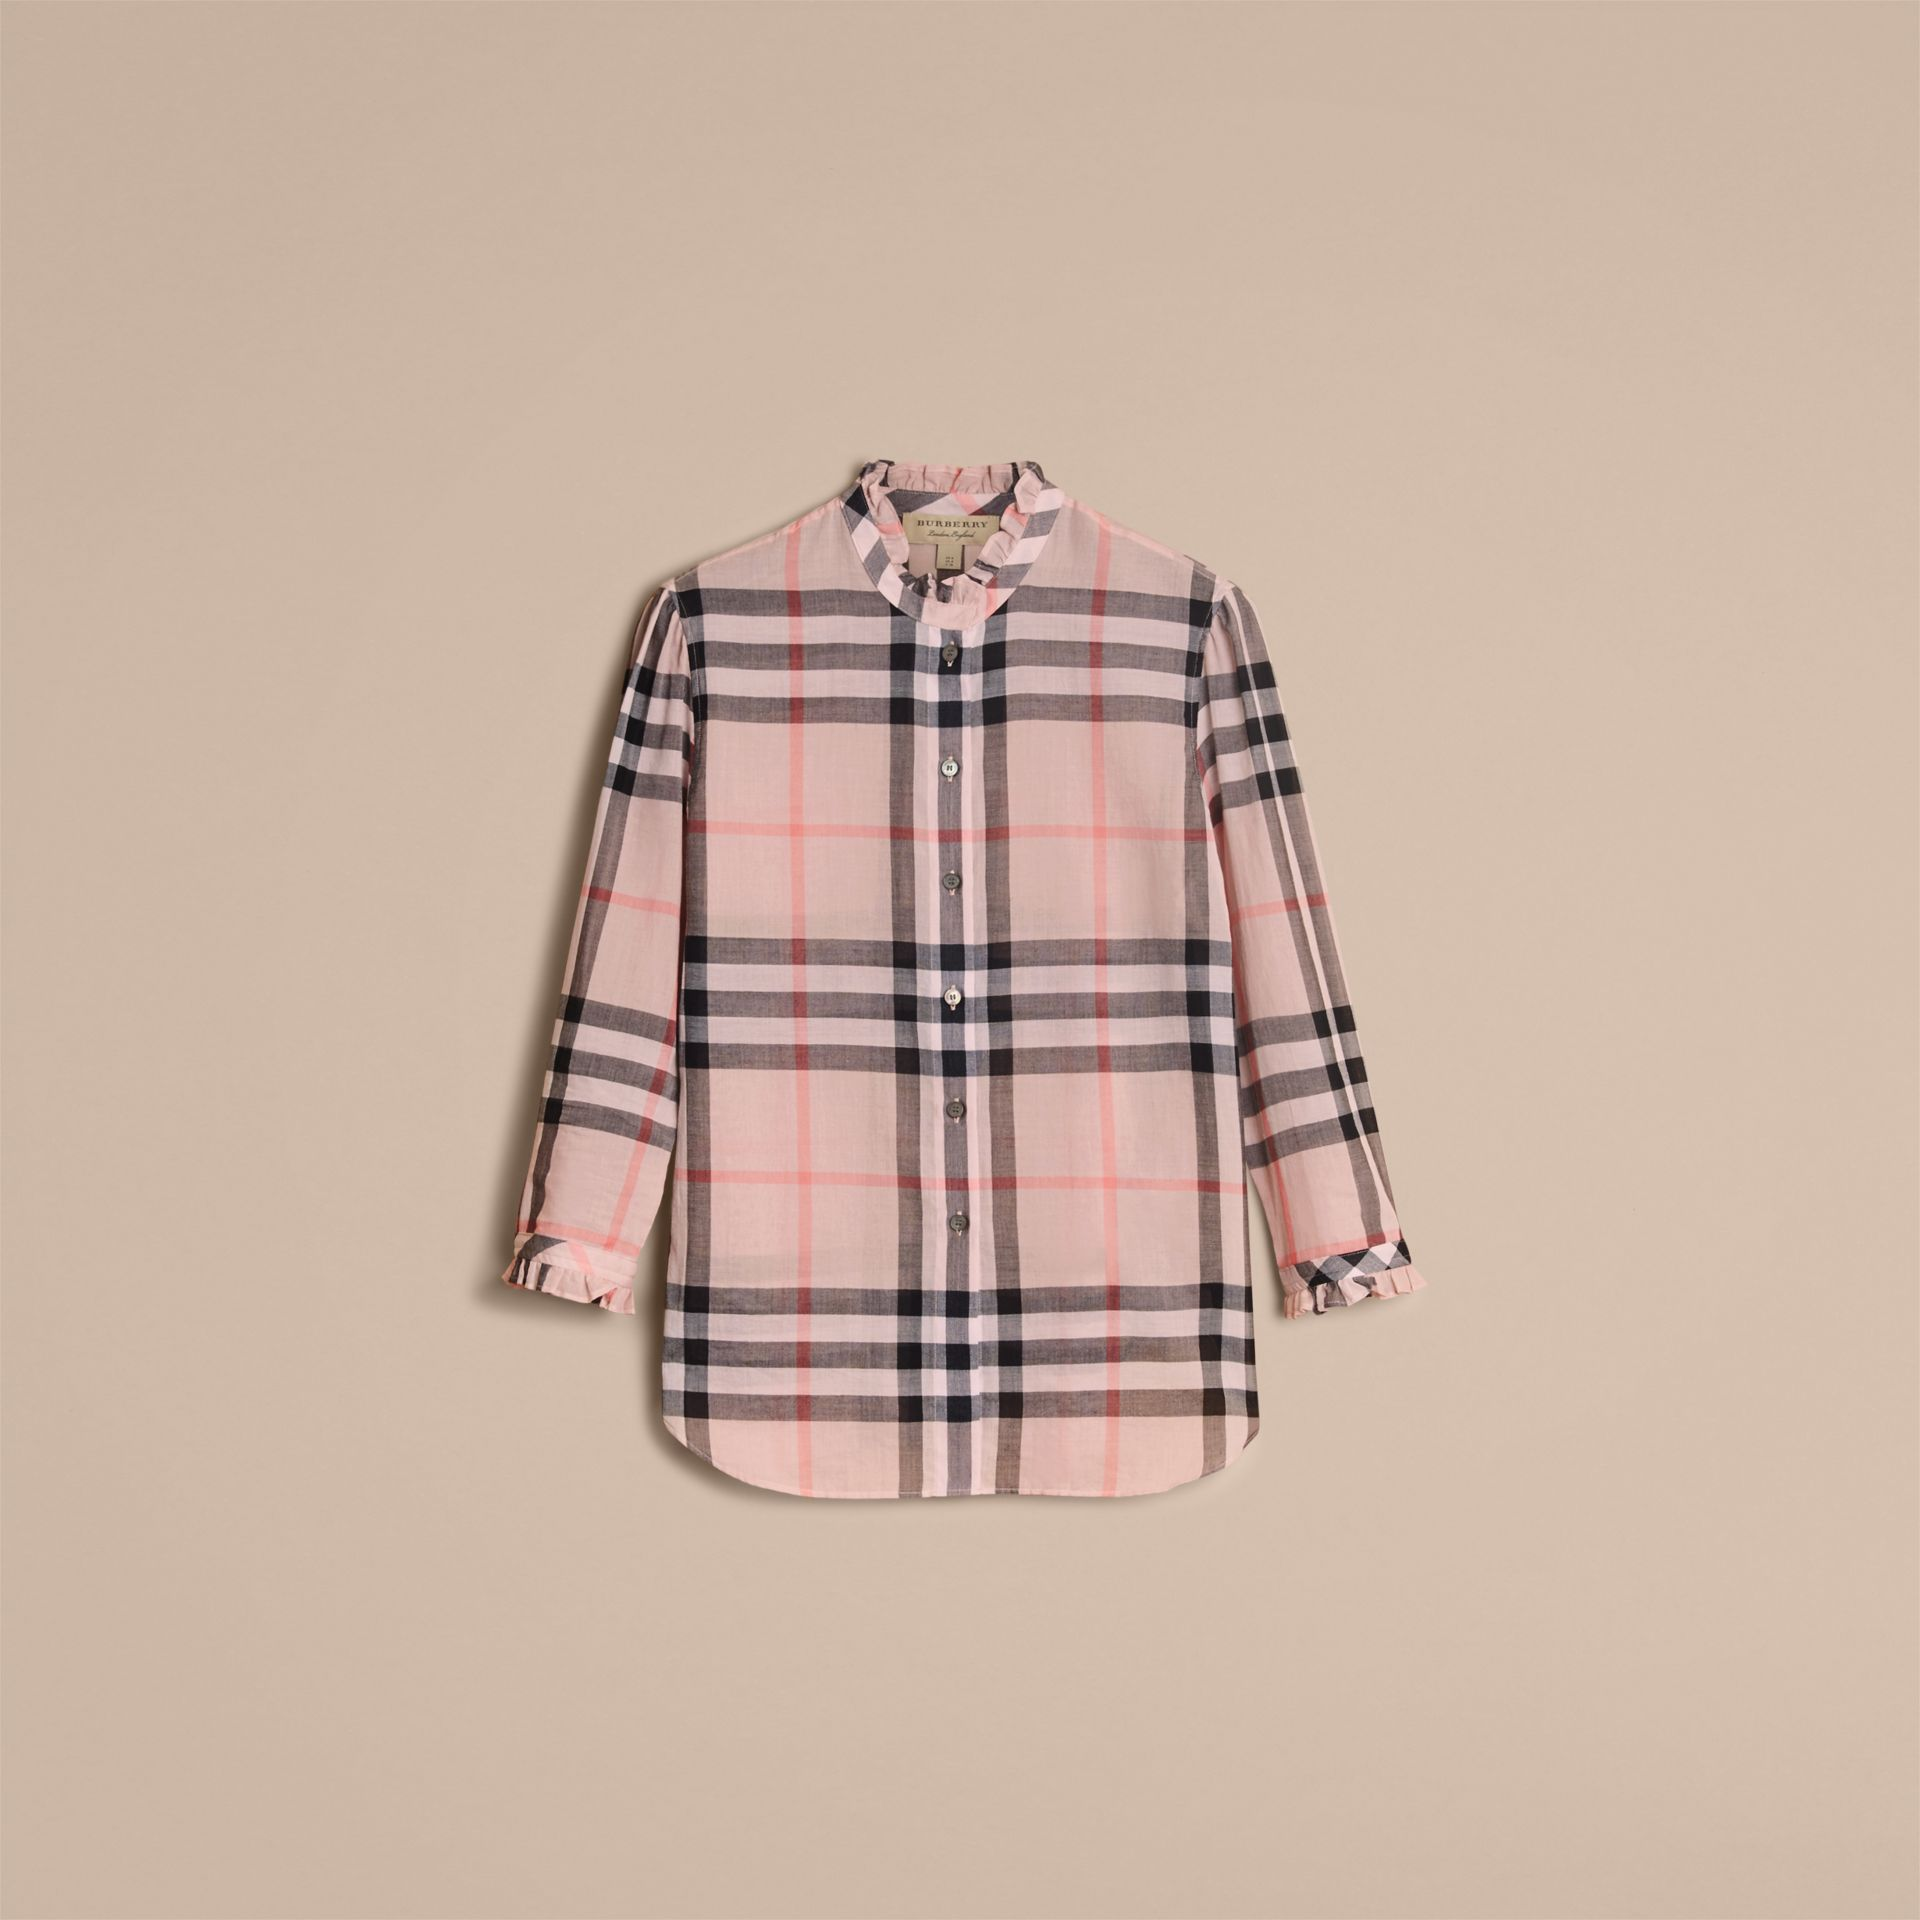 Ruffle Detail Check Cotton Shirt in Vintage Pink - Women | Burberry - gallery image 3